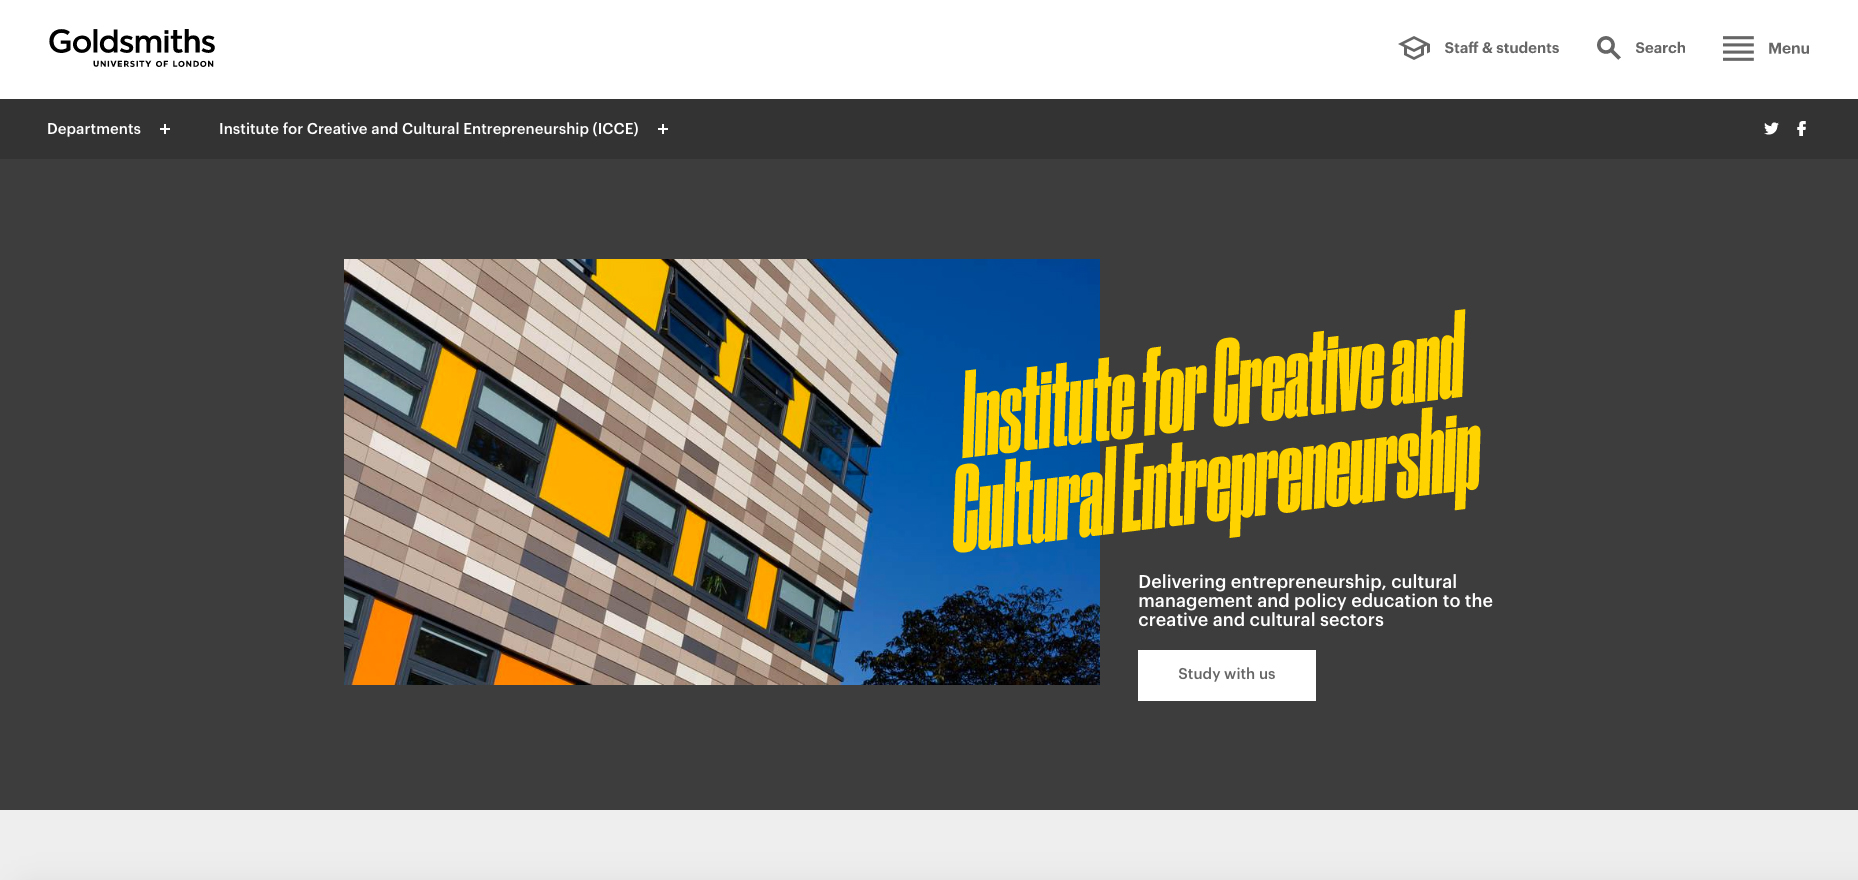 Goldsmiths University of London - ICCE